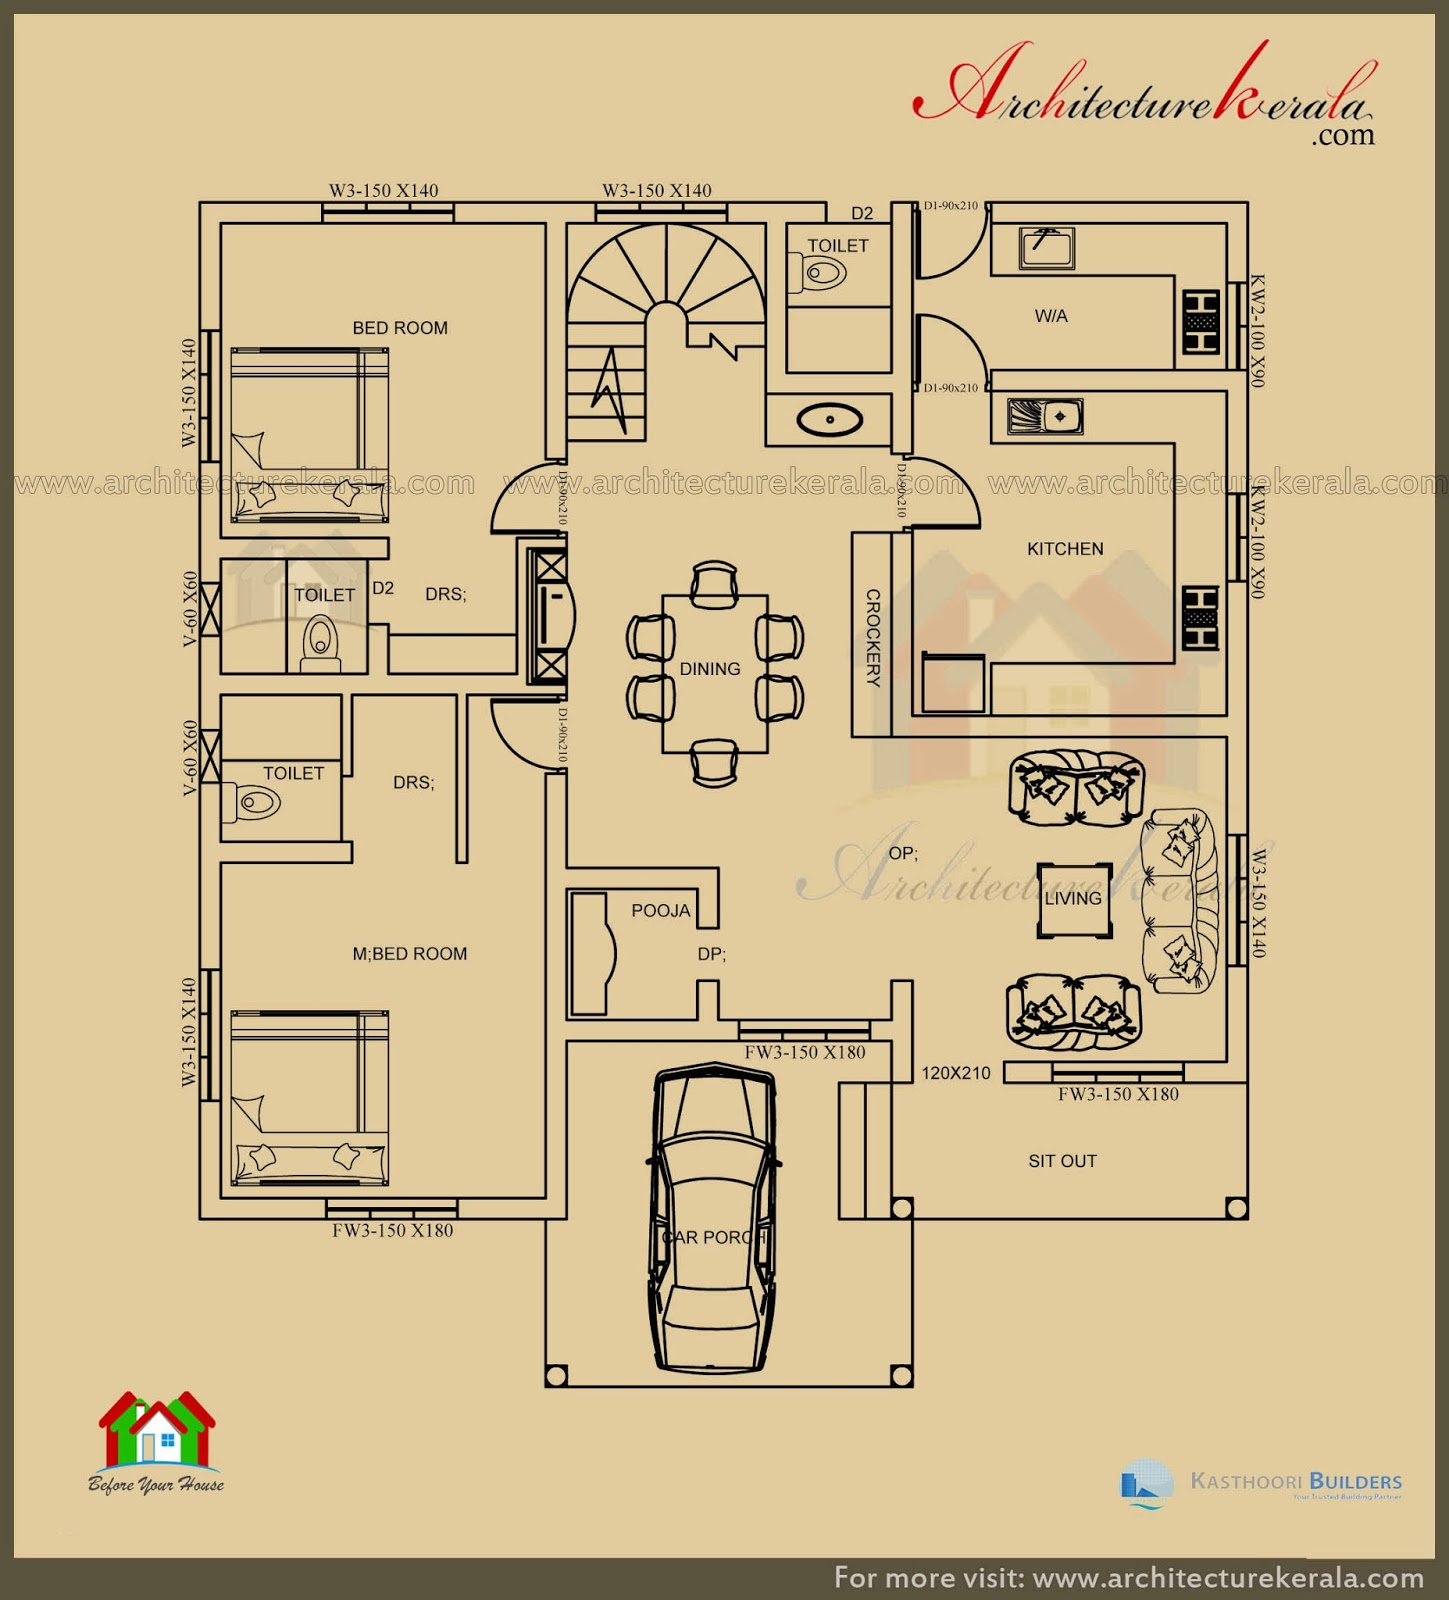 2500 sq ft 3 bedroom house plan with pooja room for 3 bedroom house floor plans with models pdf